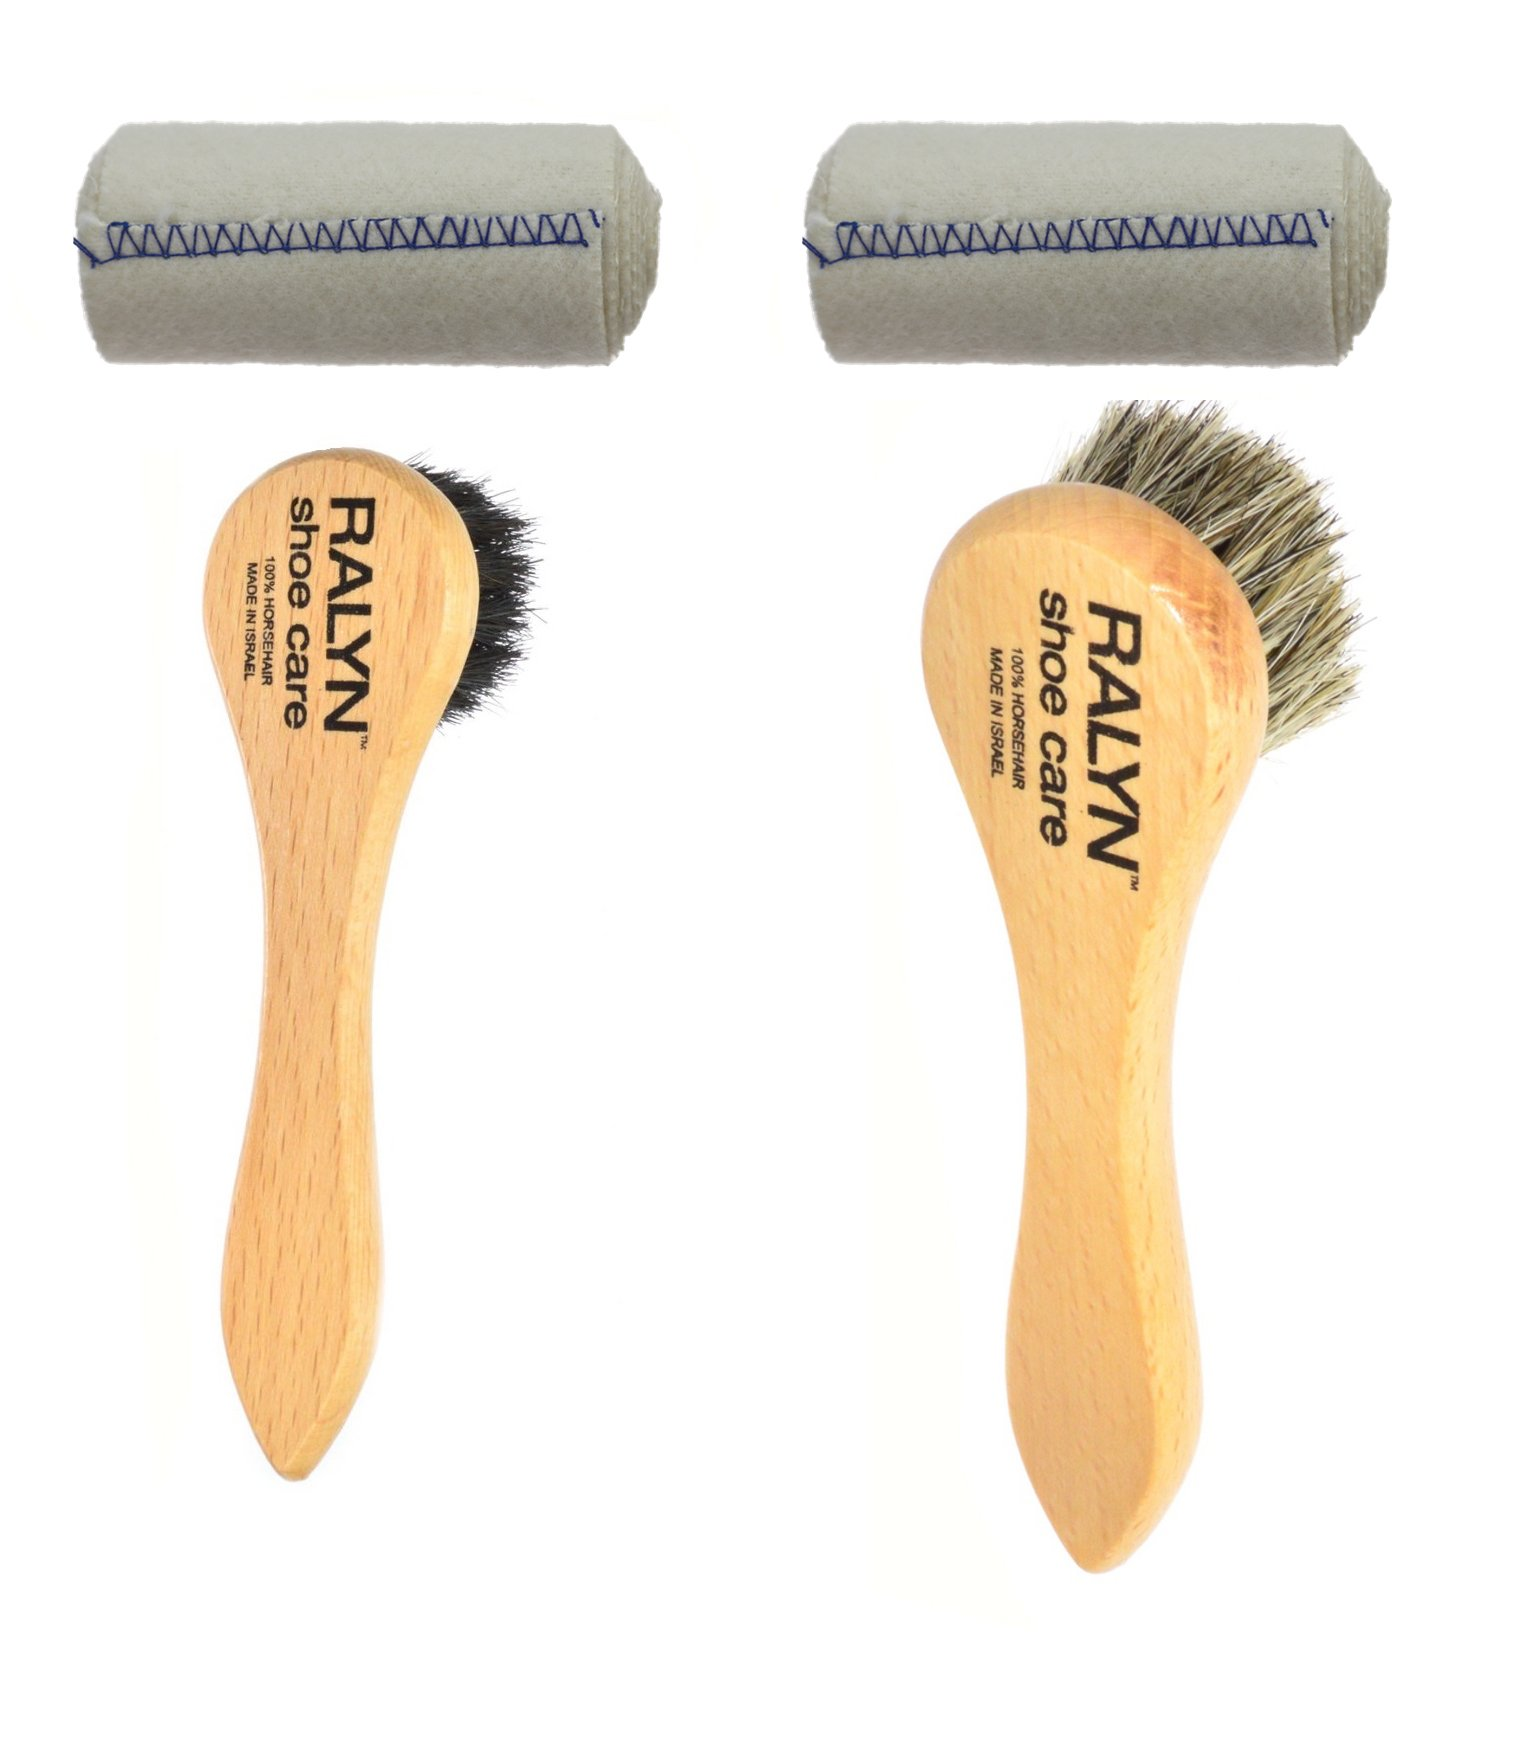 Dauber brushes dark and light bristles with shoe shine cloth. by Ralyn (Image #1)